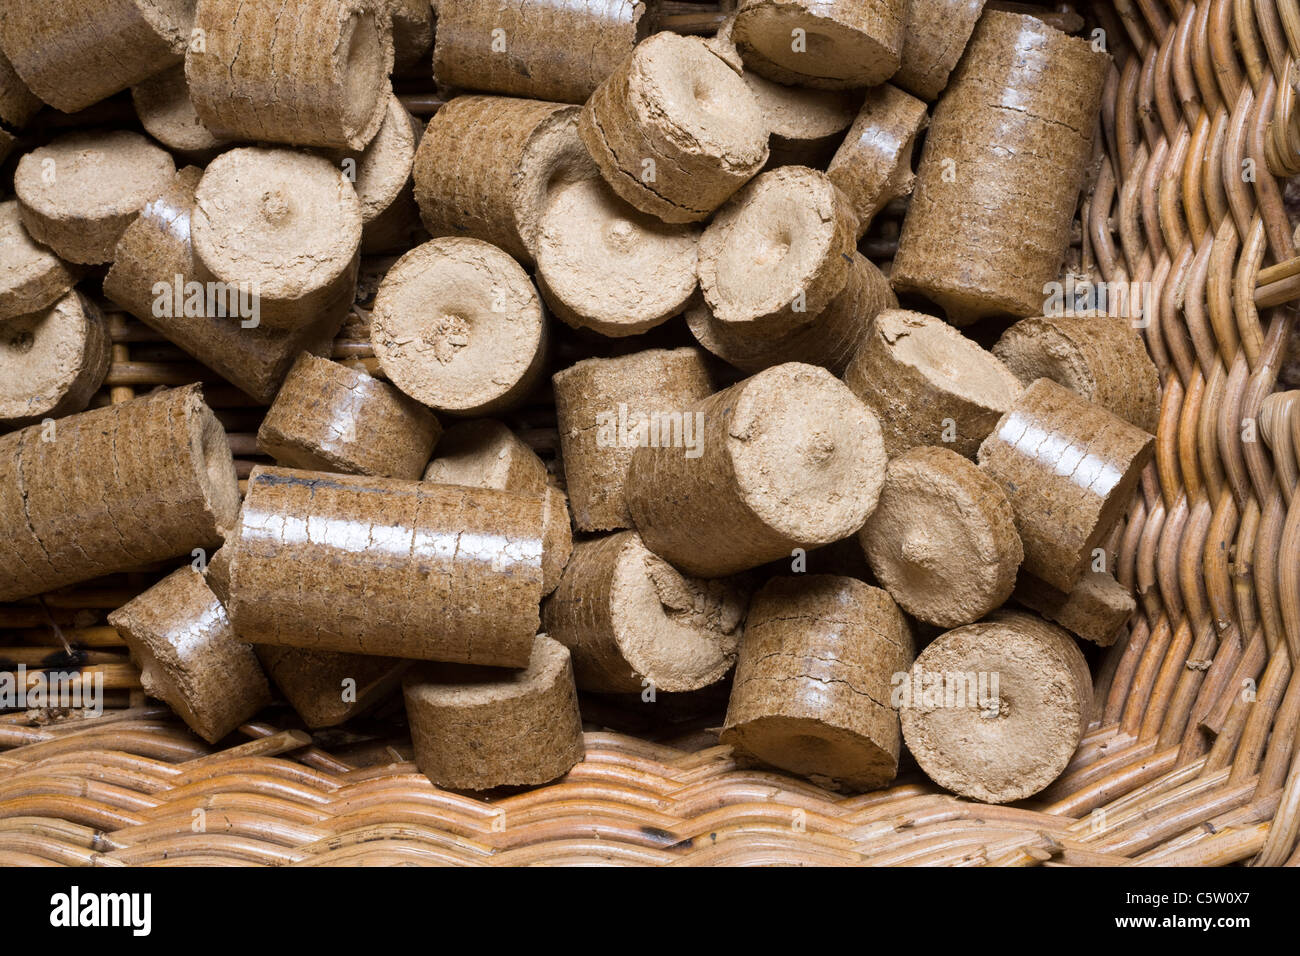 Compressed wood chip and sawdust pellets in a log basket